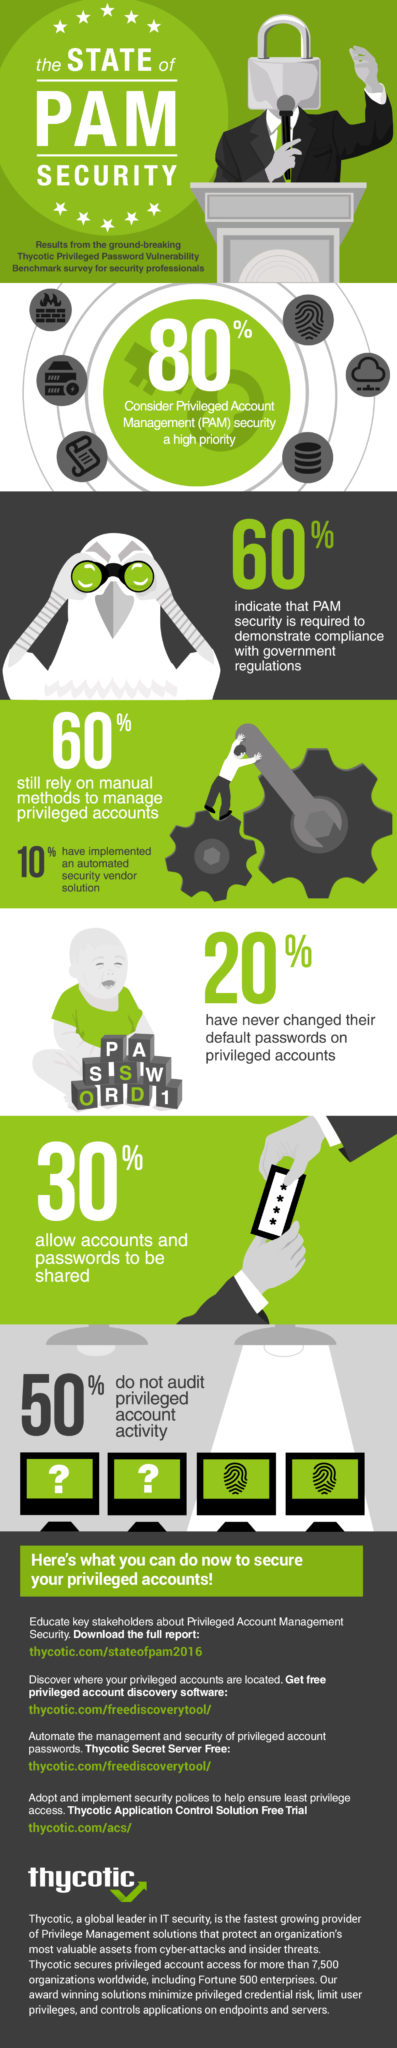 State of PAM Infographic - Privileged Account Management and Security by Thycotic